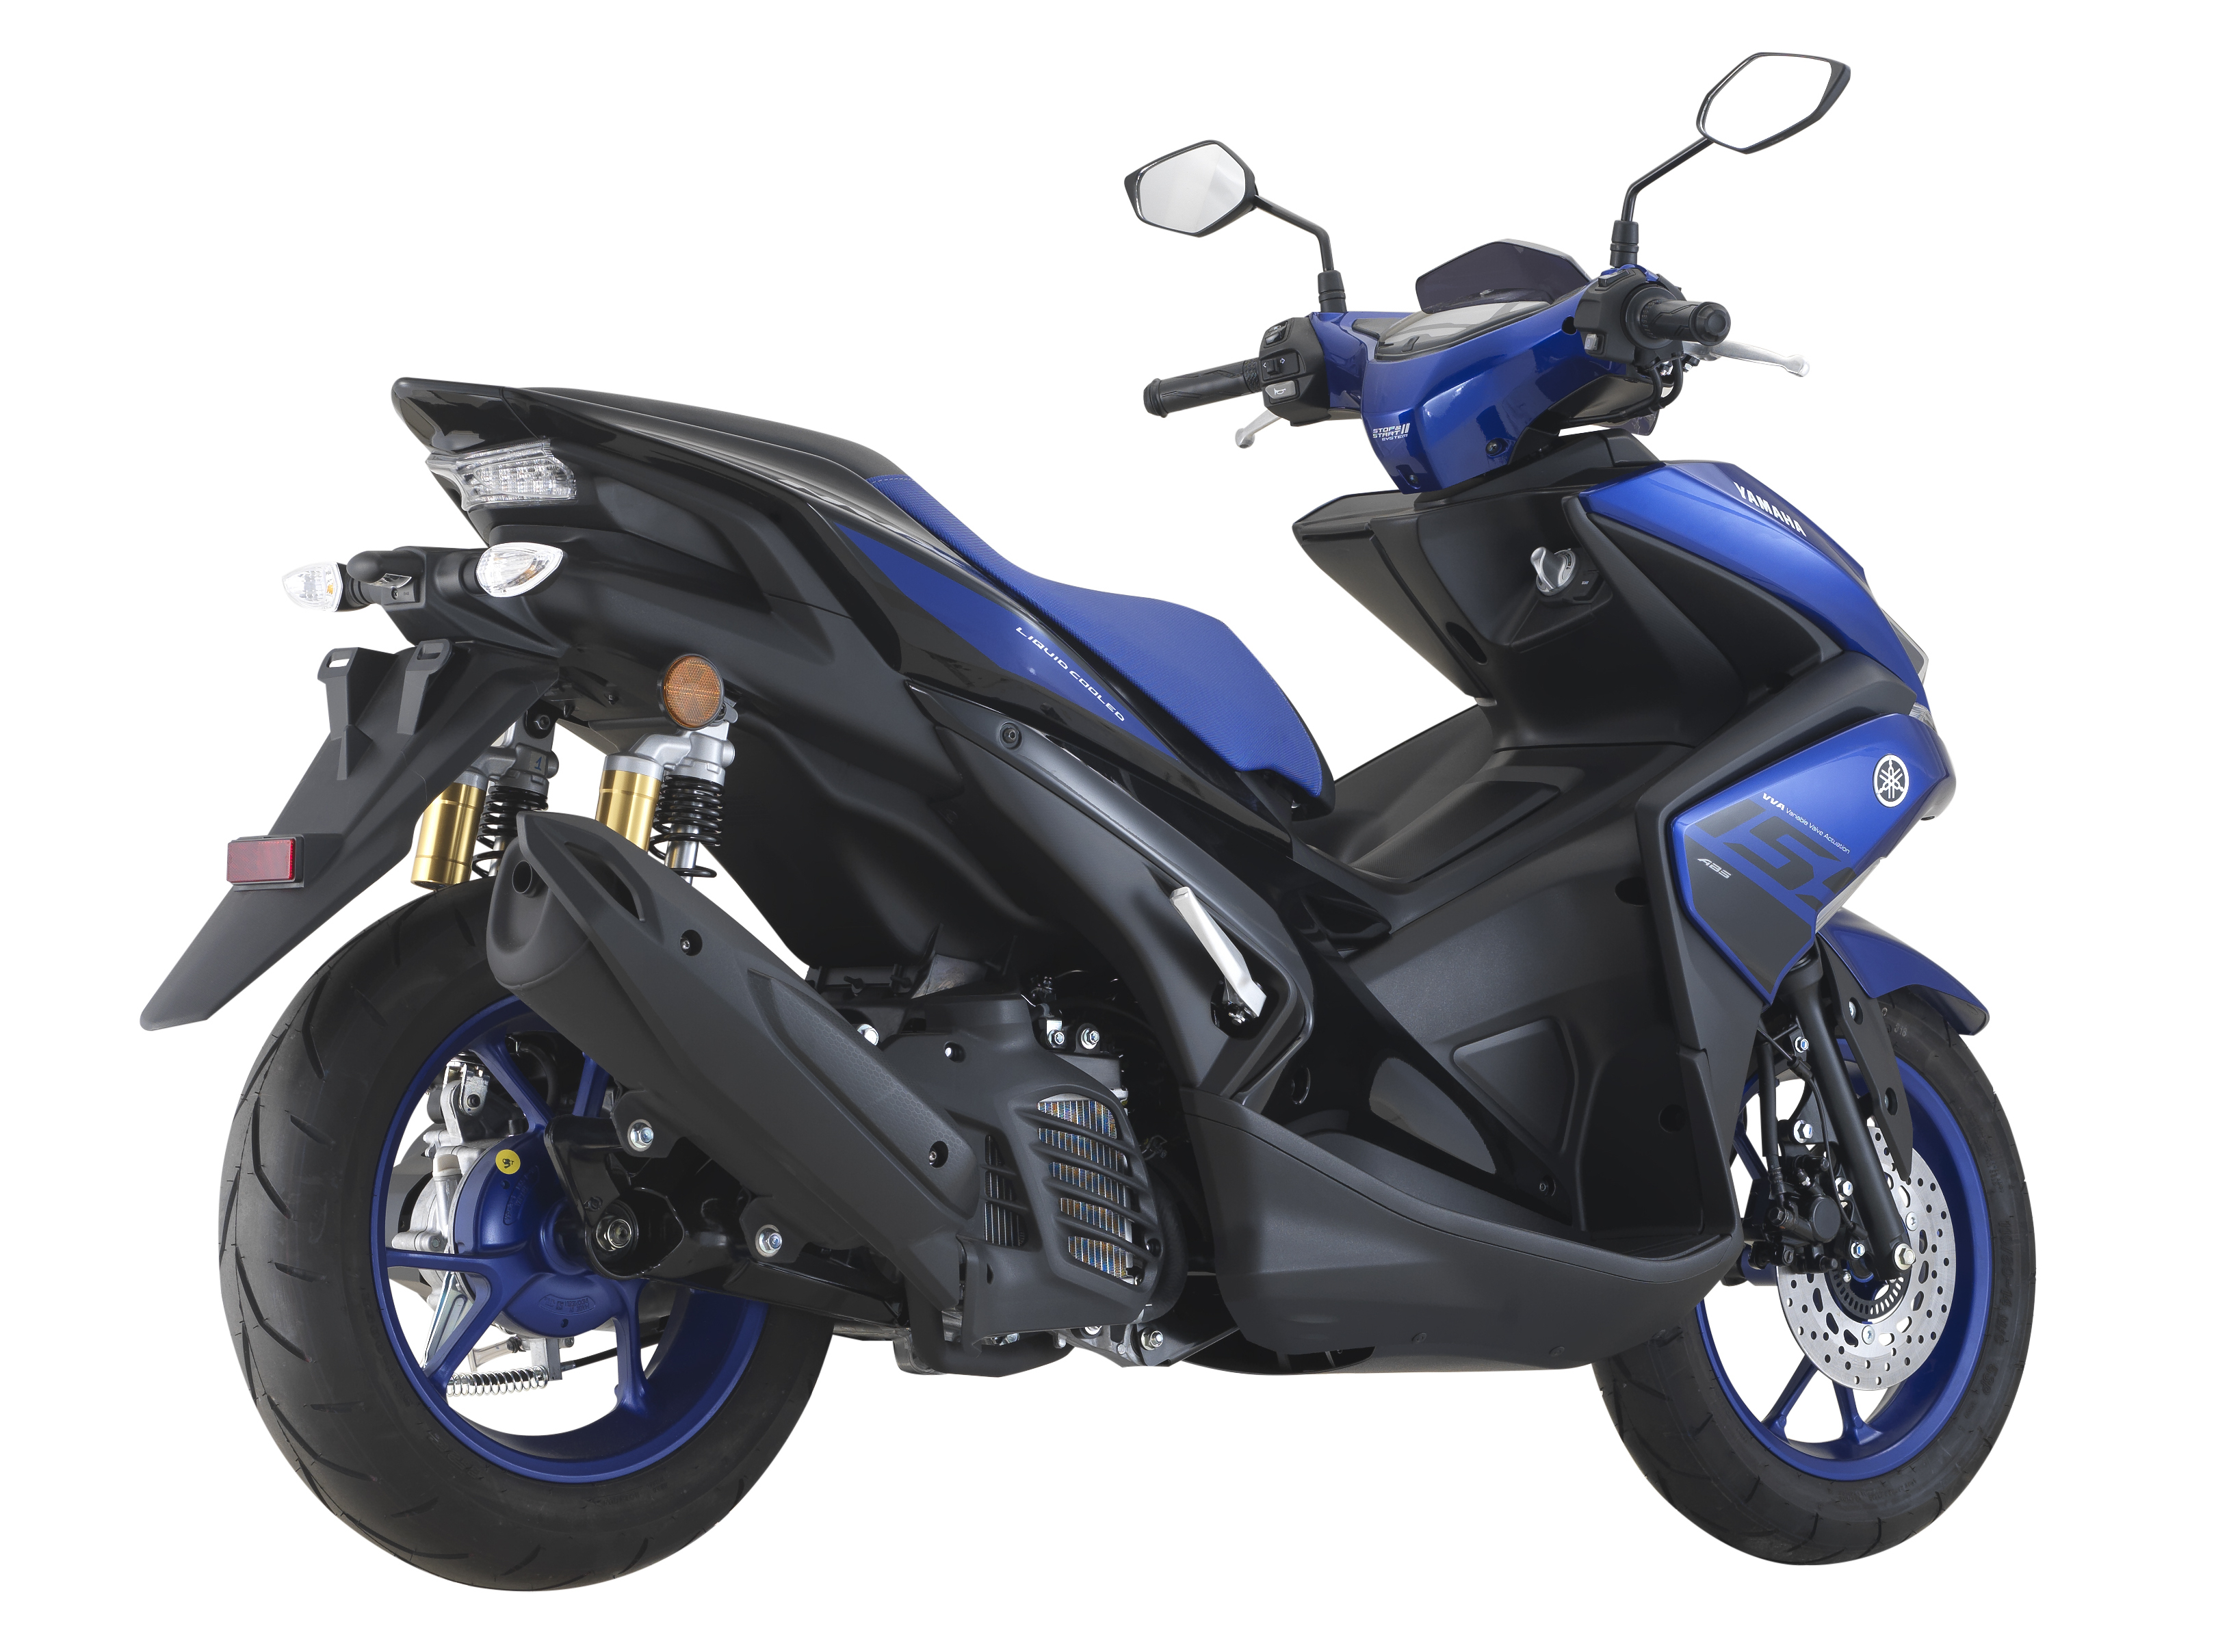 2019 yamaha nvx in new colours – priced at rm9,988 paul tan - image